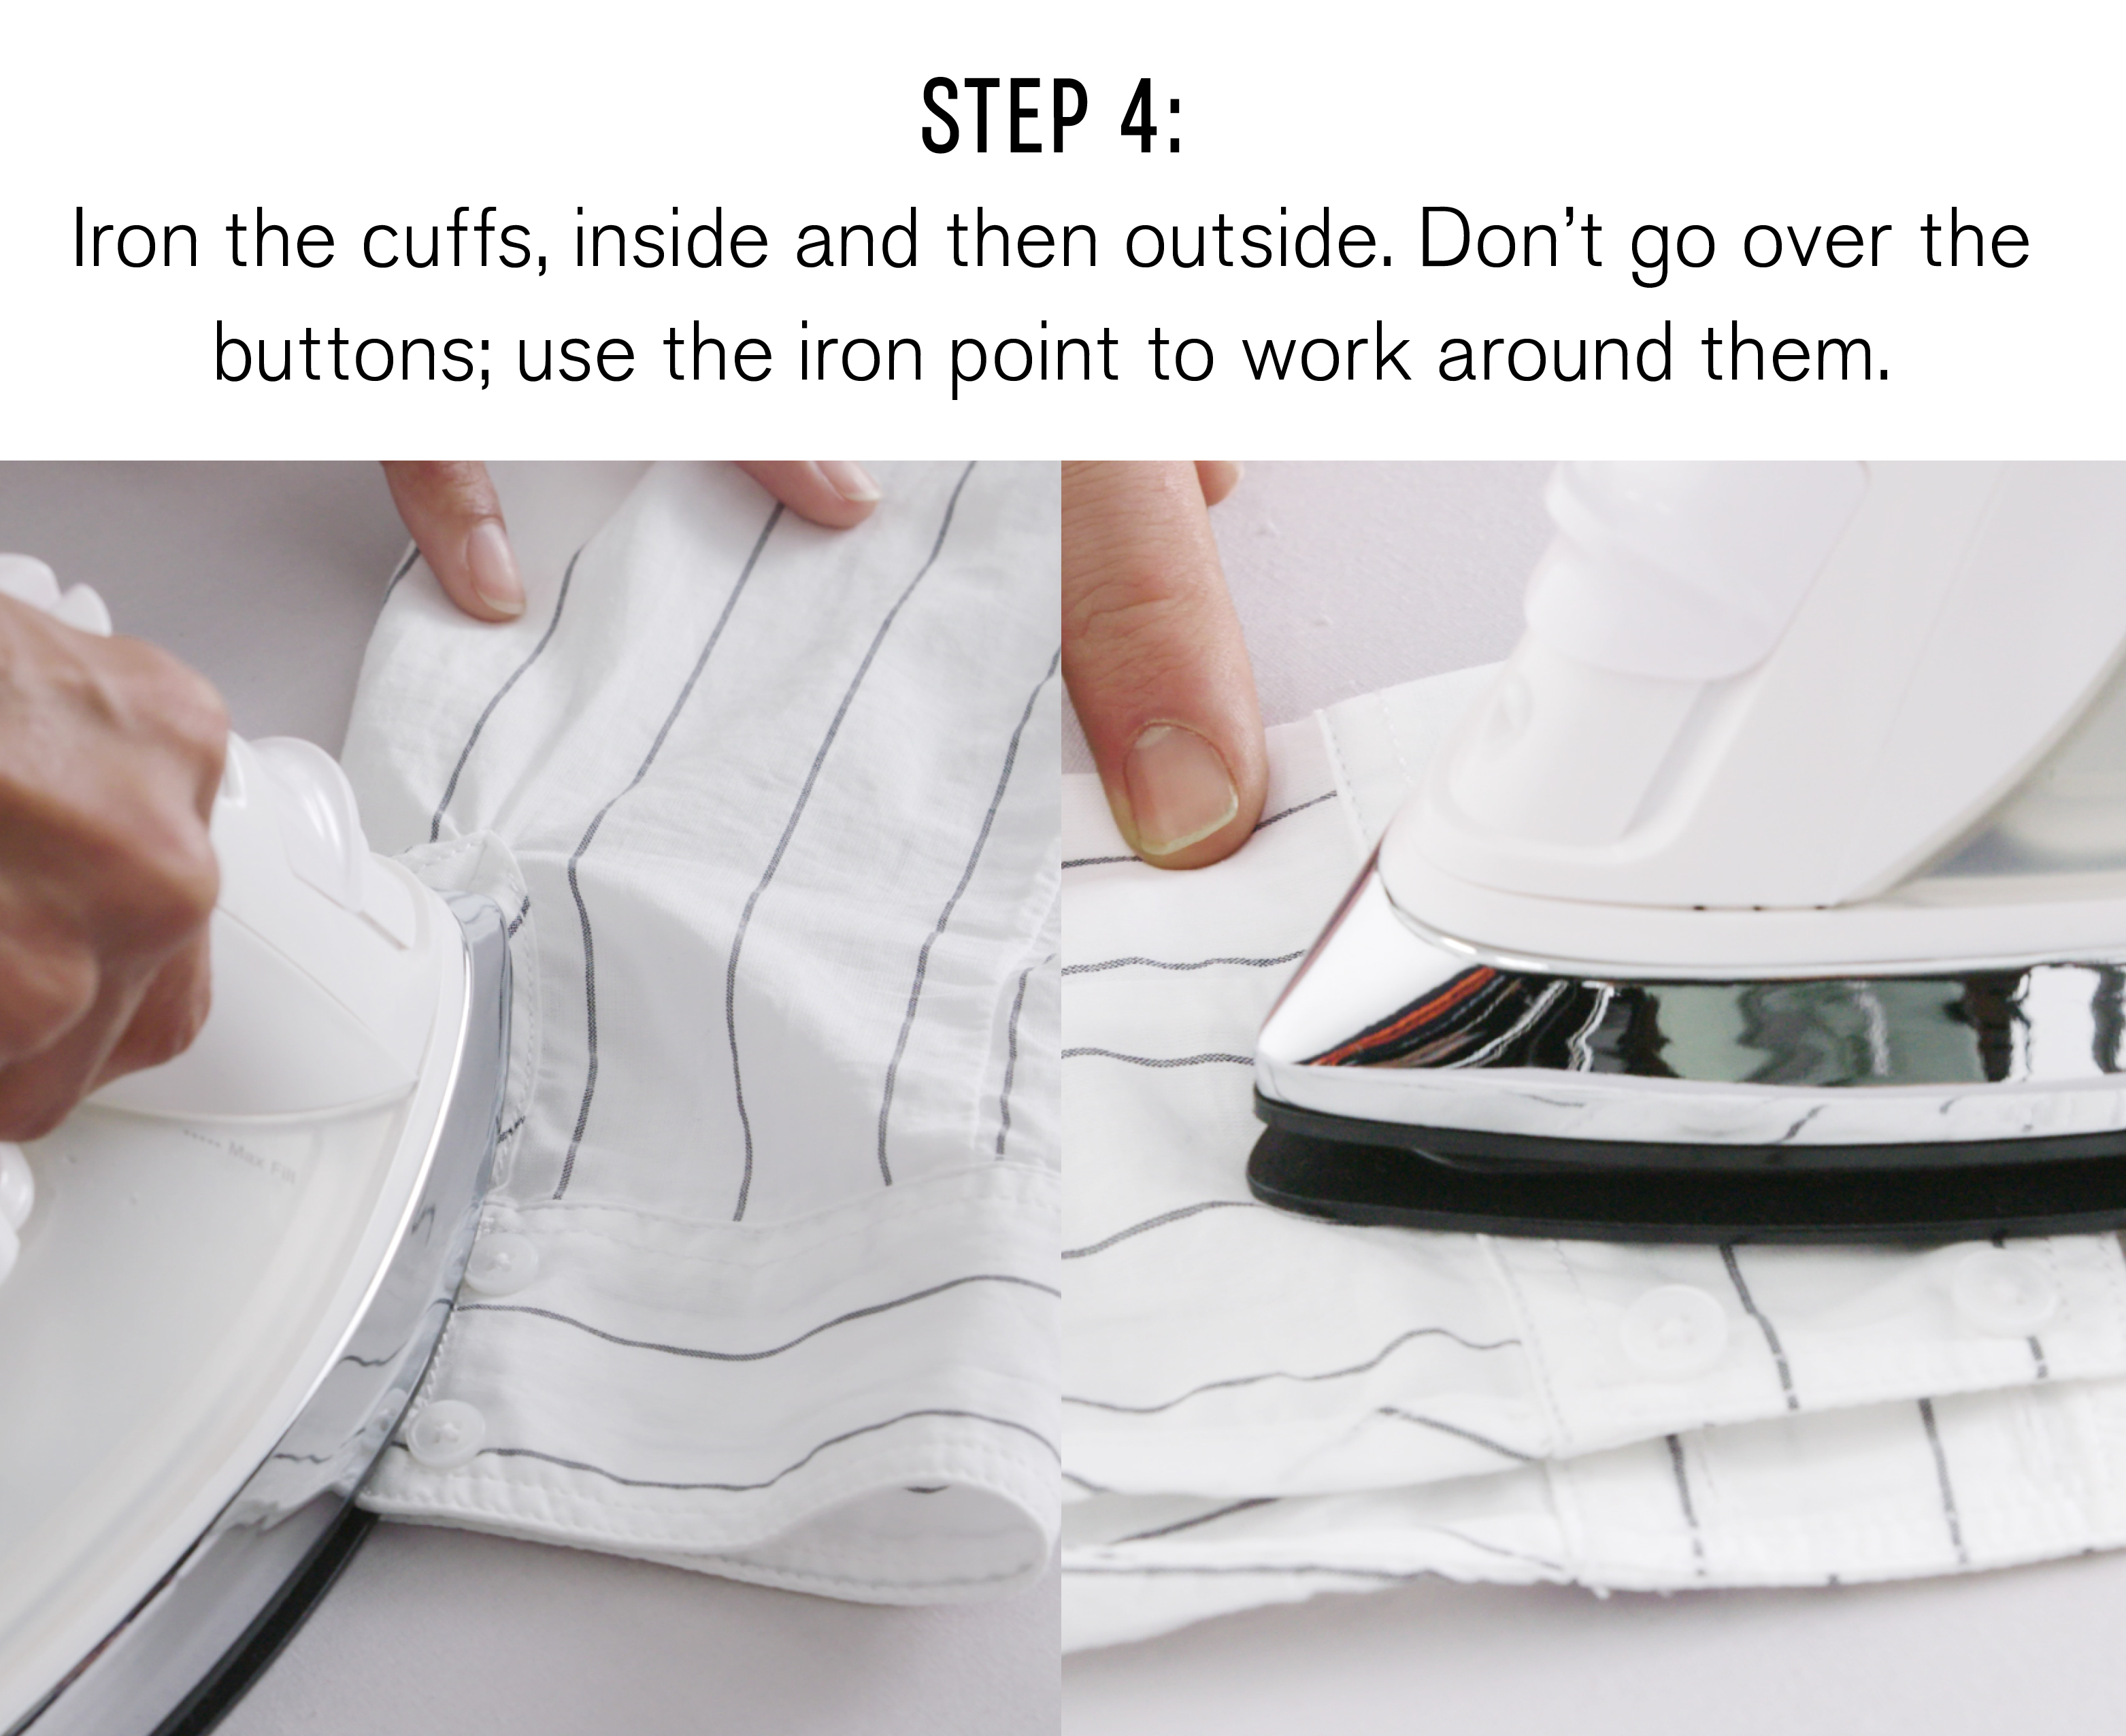 step-four-iron-the-cuffs-inside-and-then-outside-do-not-go-over-the-buttons-use-the-iron-point-to-work-around-them